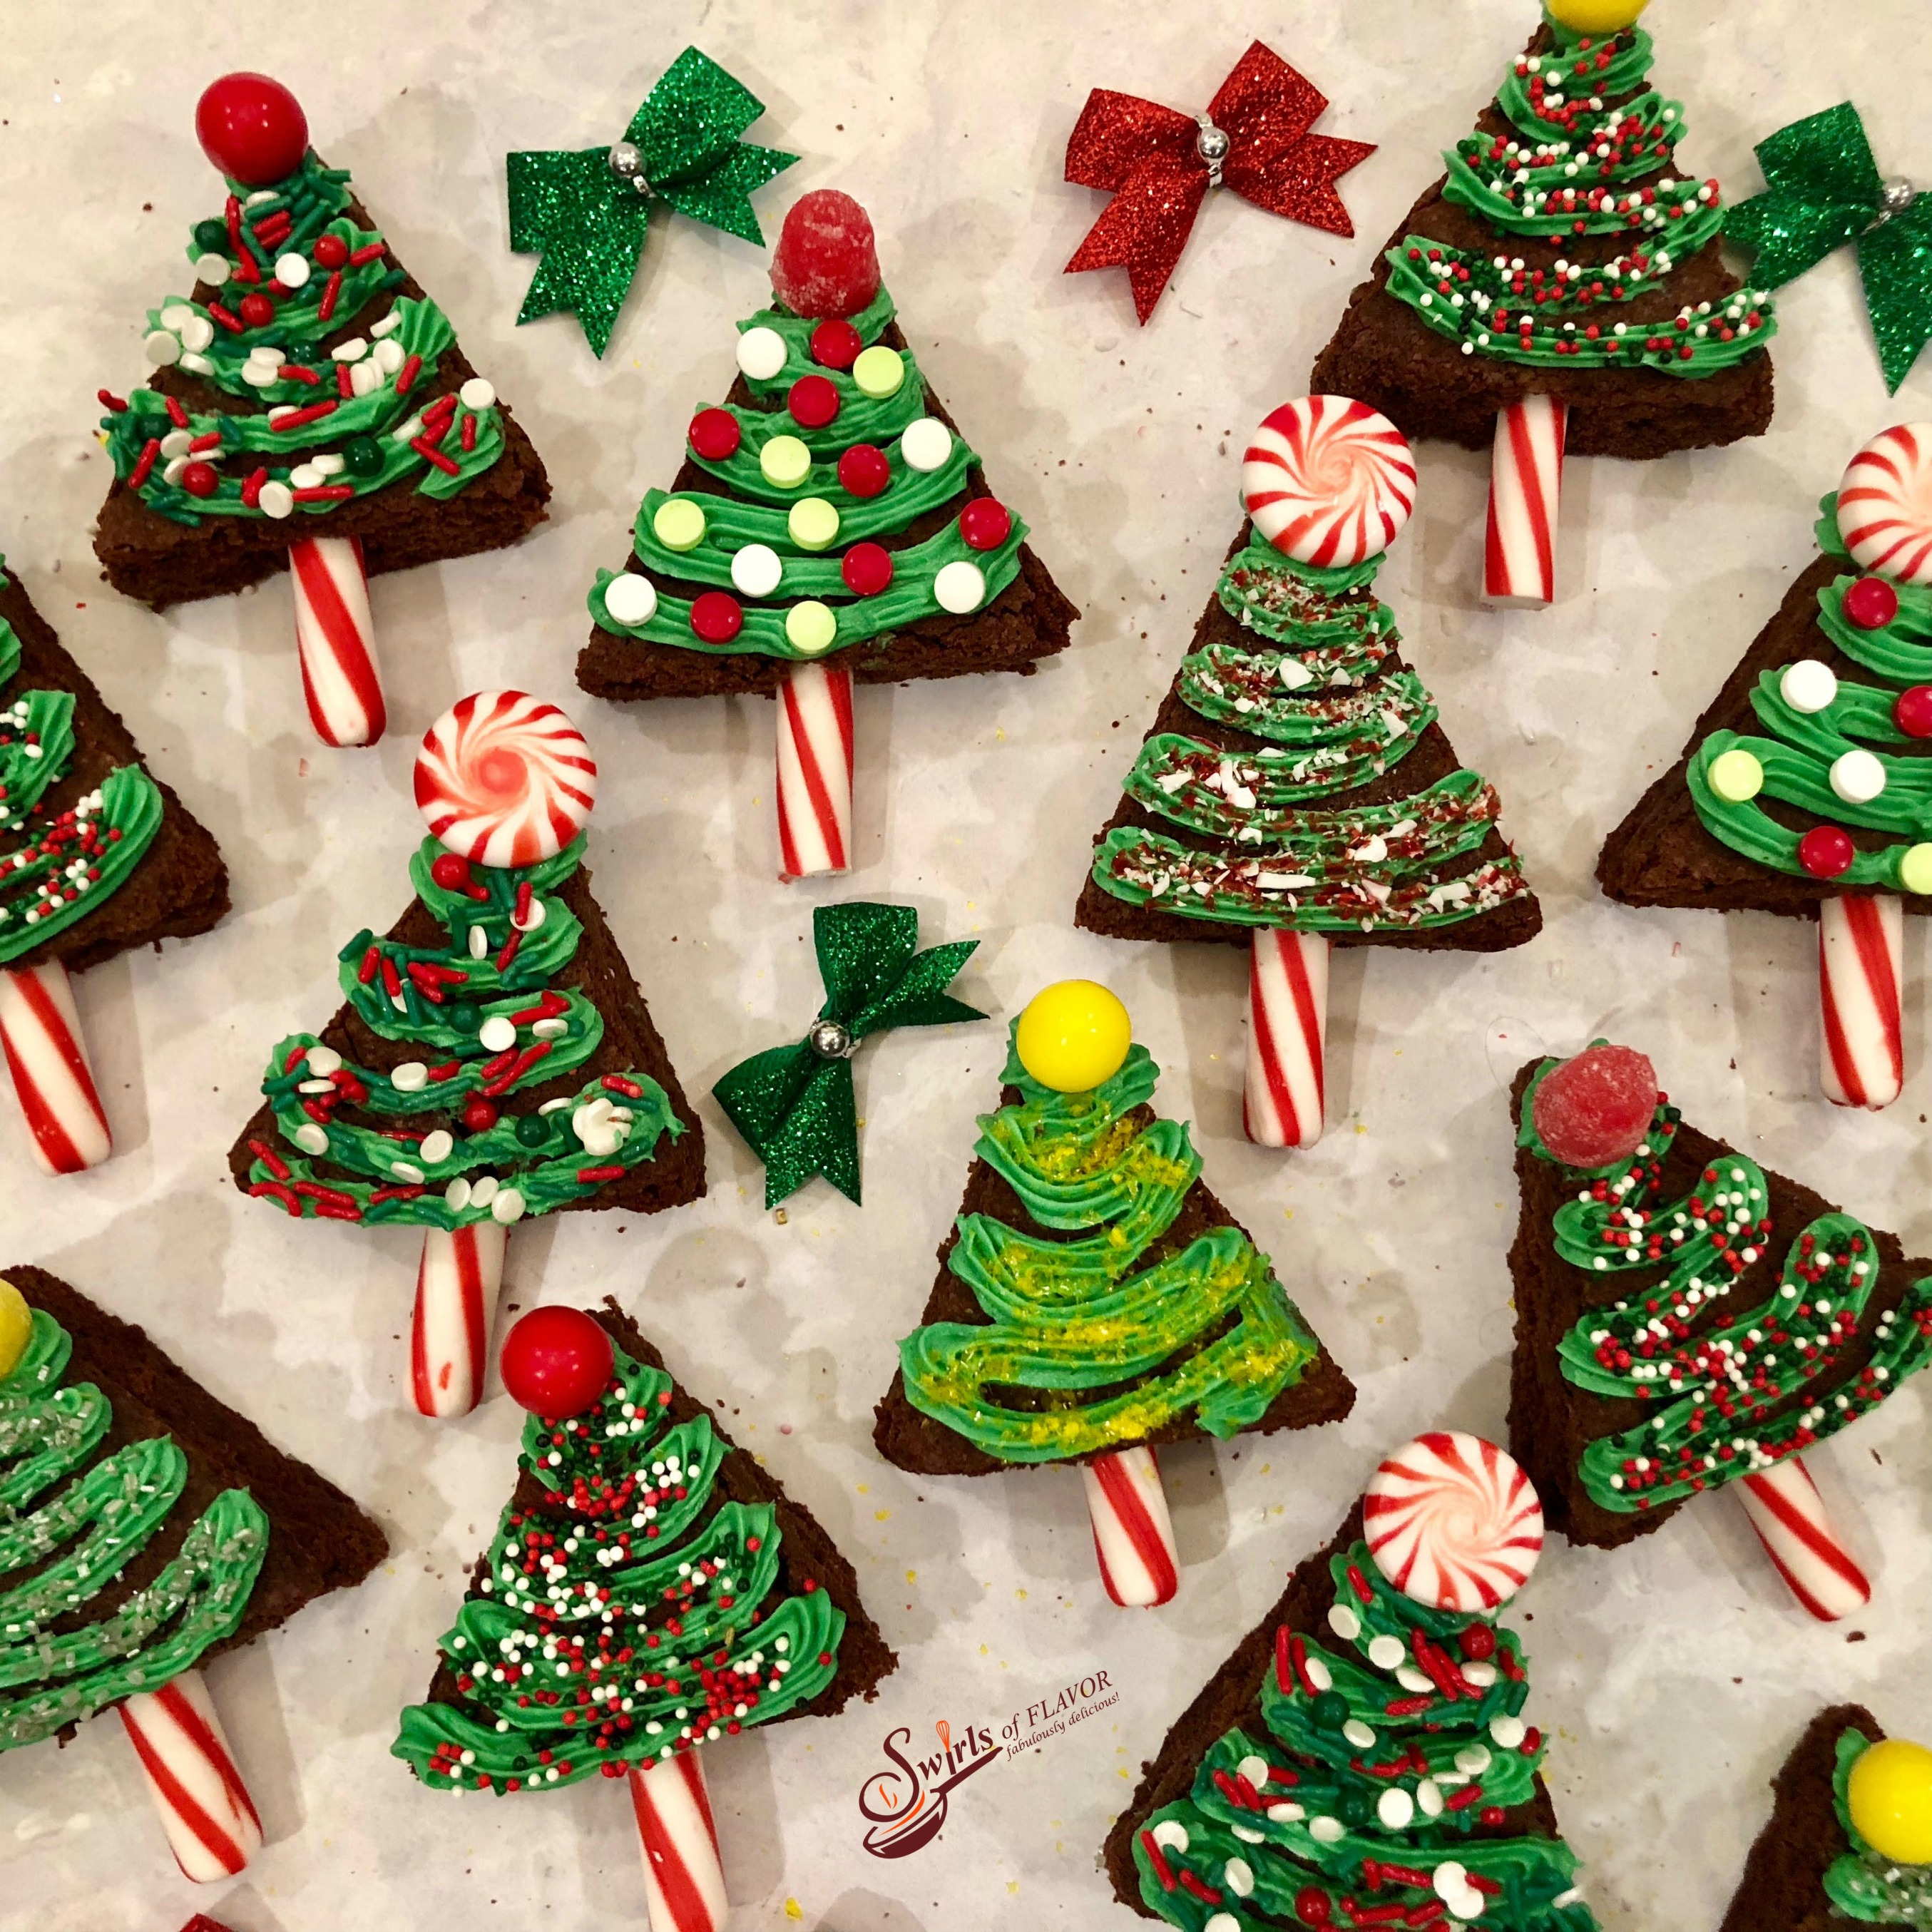 brownies shaped like Christmas trees and decorating with frosting and candy